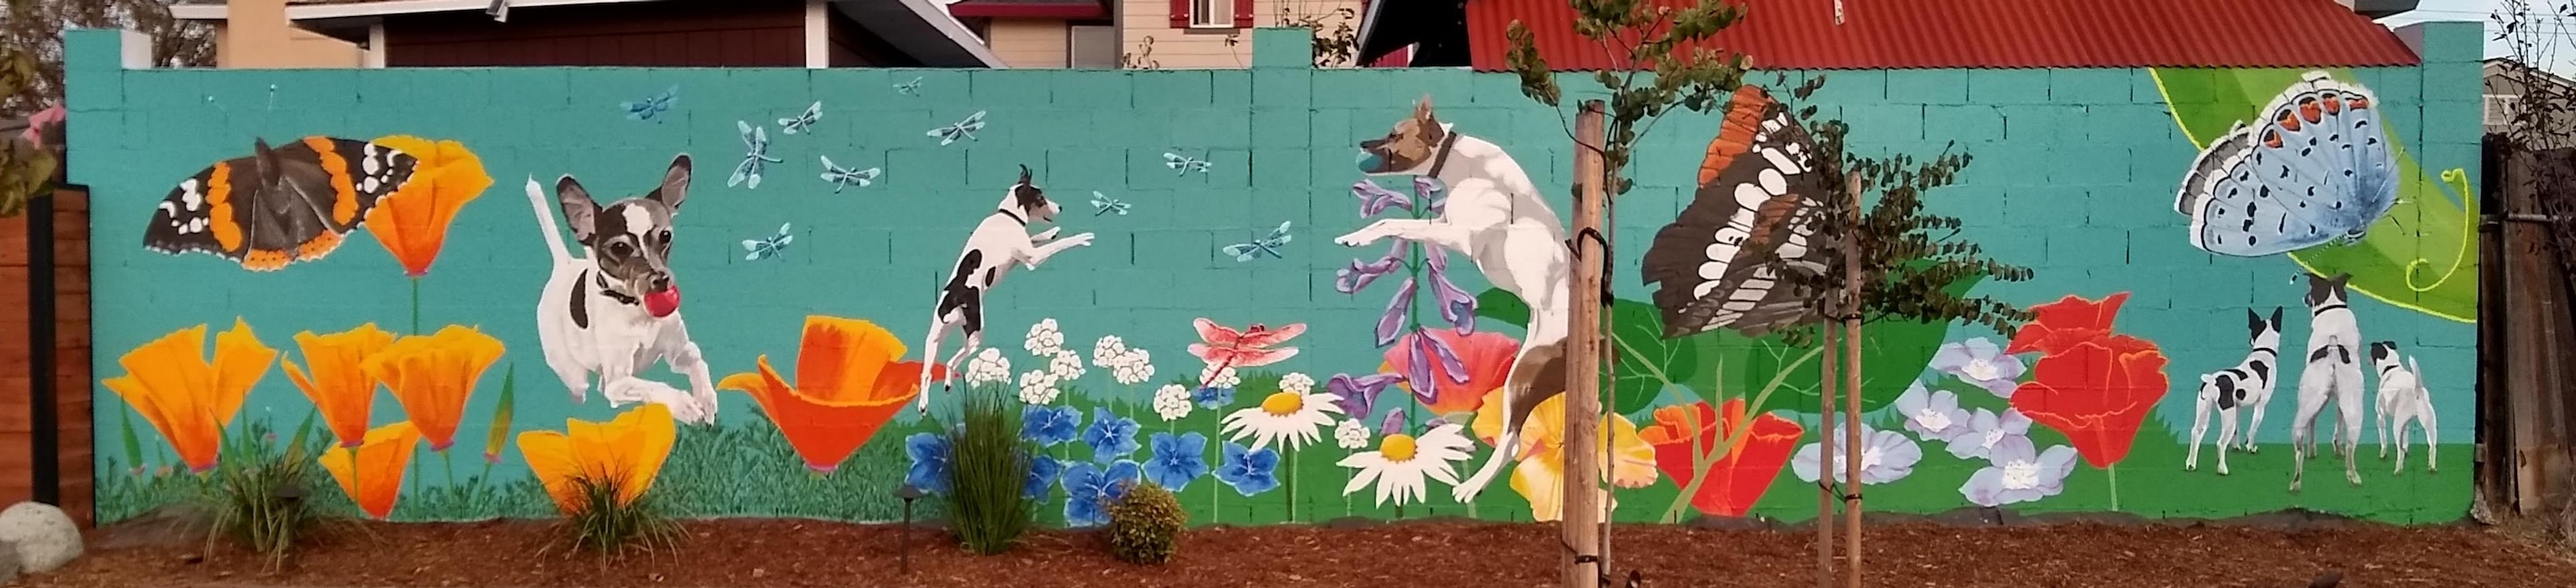 Working Artist Decorating - Jack Russells in Action